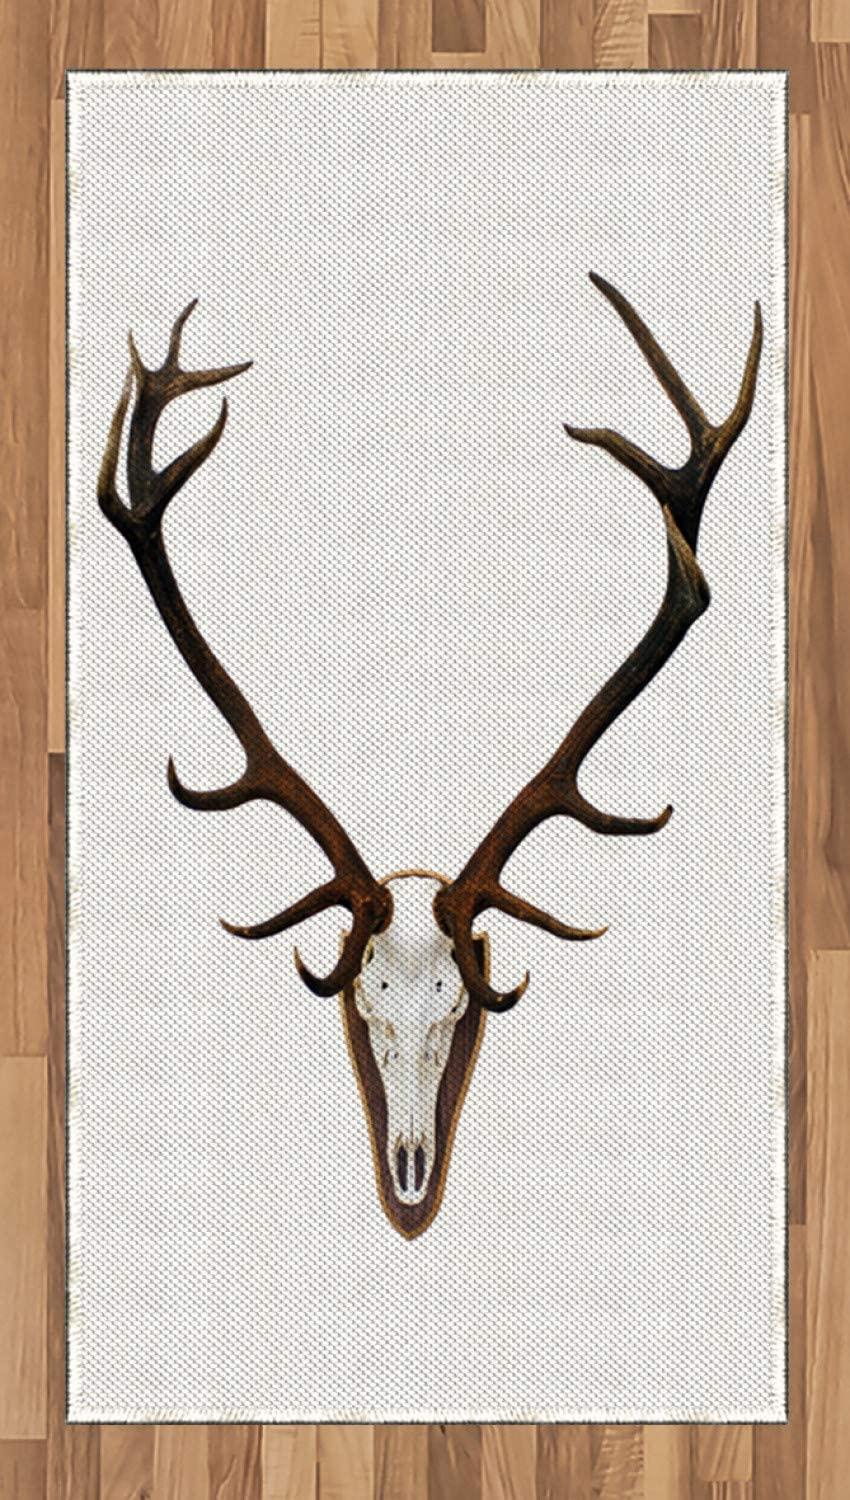 Ambesonne Antlers Area Rug, Antlers of a Huge Stag Bones Mounted on a Wooden Plate Prize Skull Print, Flat Woven Accent Rug for Living Room Bedroom Dining Room, 2.6 x 5 FT, Brown and Pale Grey